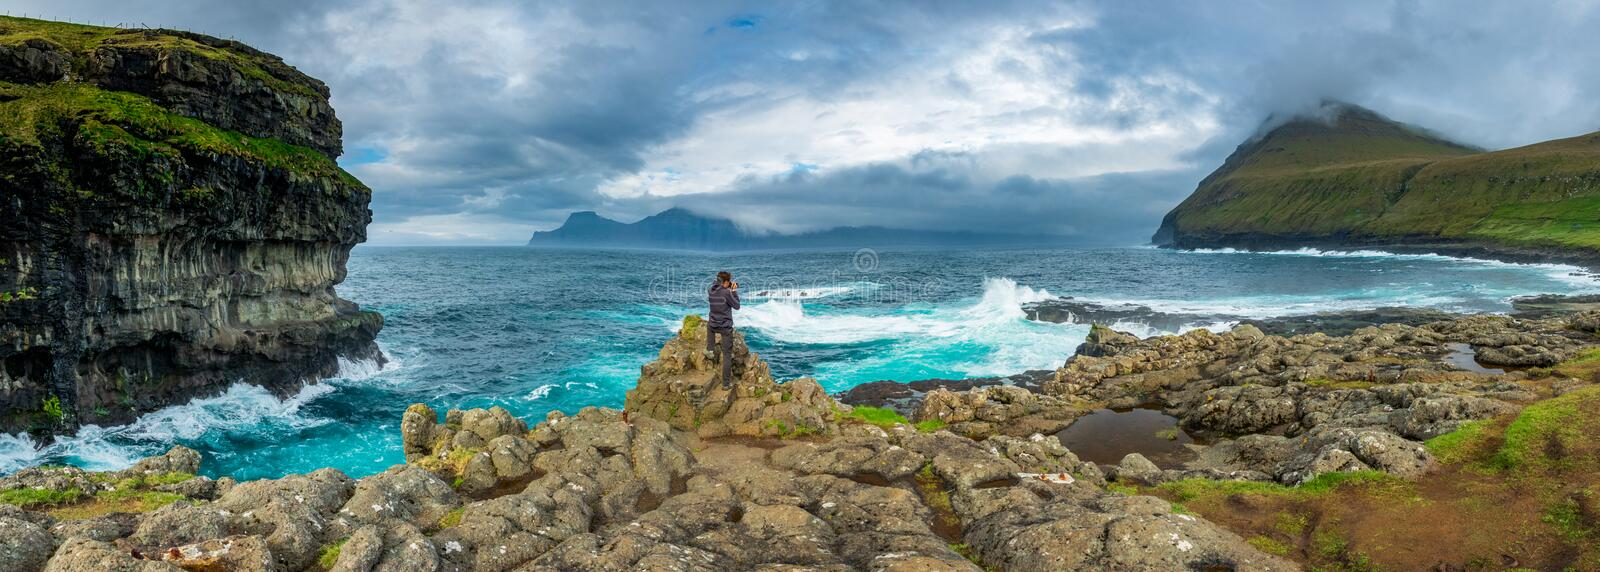 Spectacular panorama with unidentified photographer in the coastline. Spectacular panorama with unidentified photographer in the wild coastline of Faroe Islands royalty free stock photo